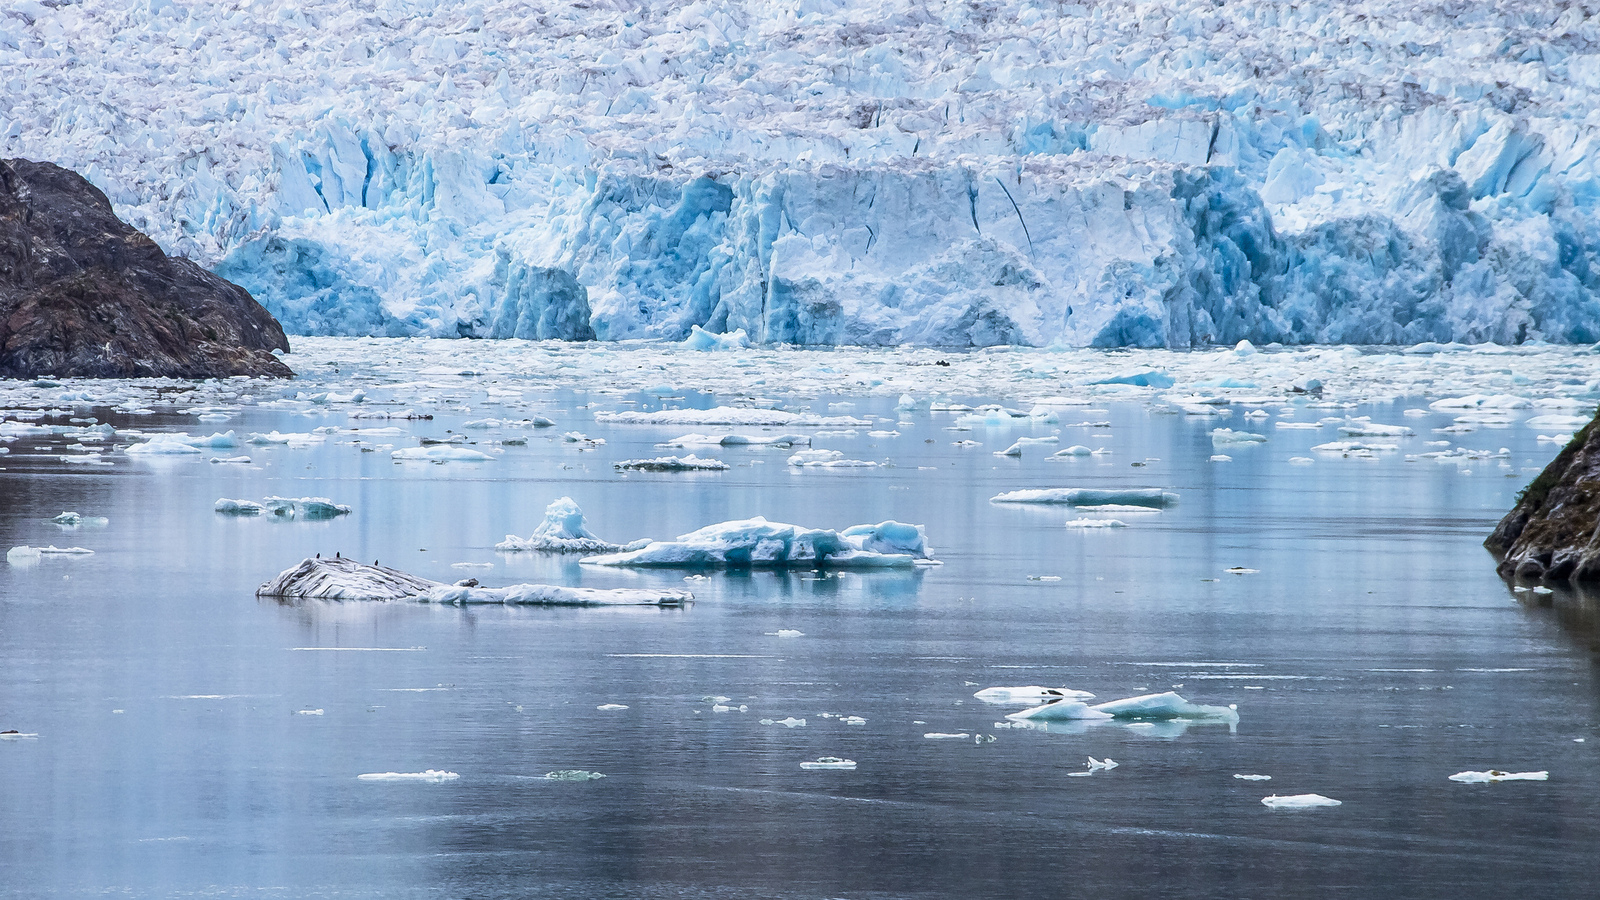 Bits of icebergs can be seen that have broken off the Sawyer Glacier in Alaska, where the effects of climate change are being felt at a higher rate than the Lower 48.